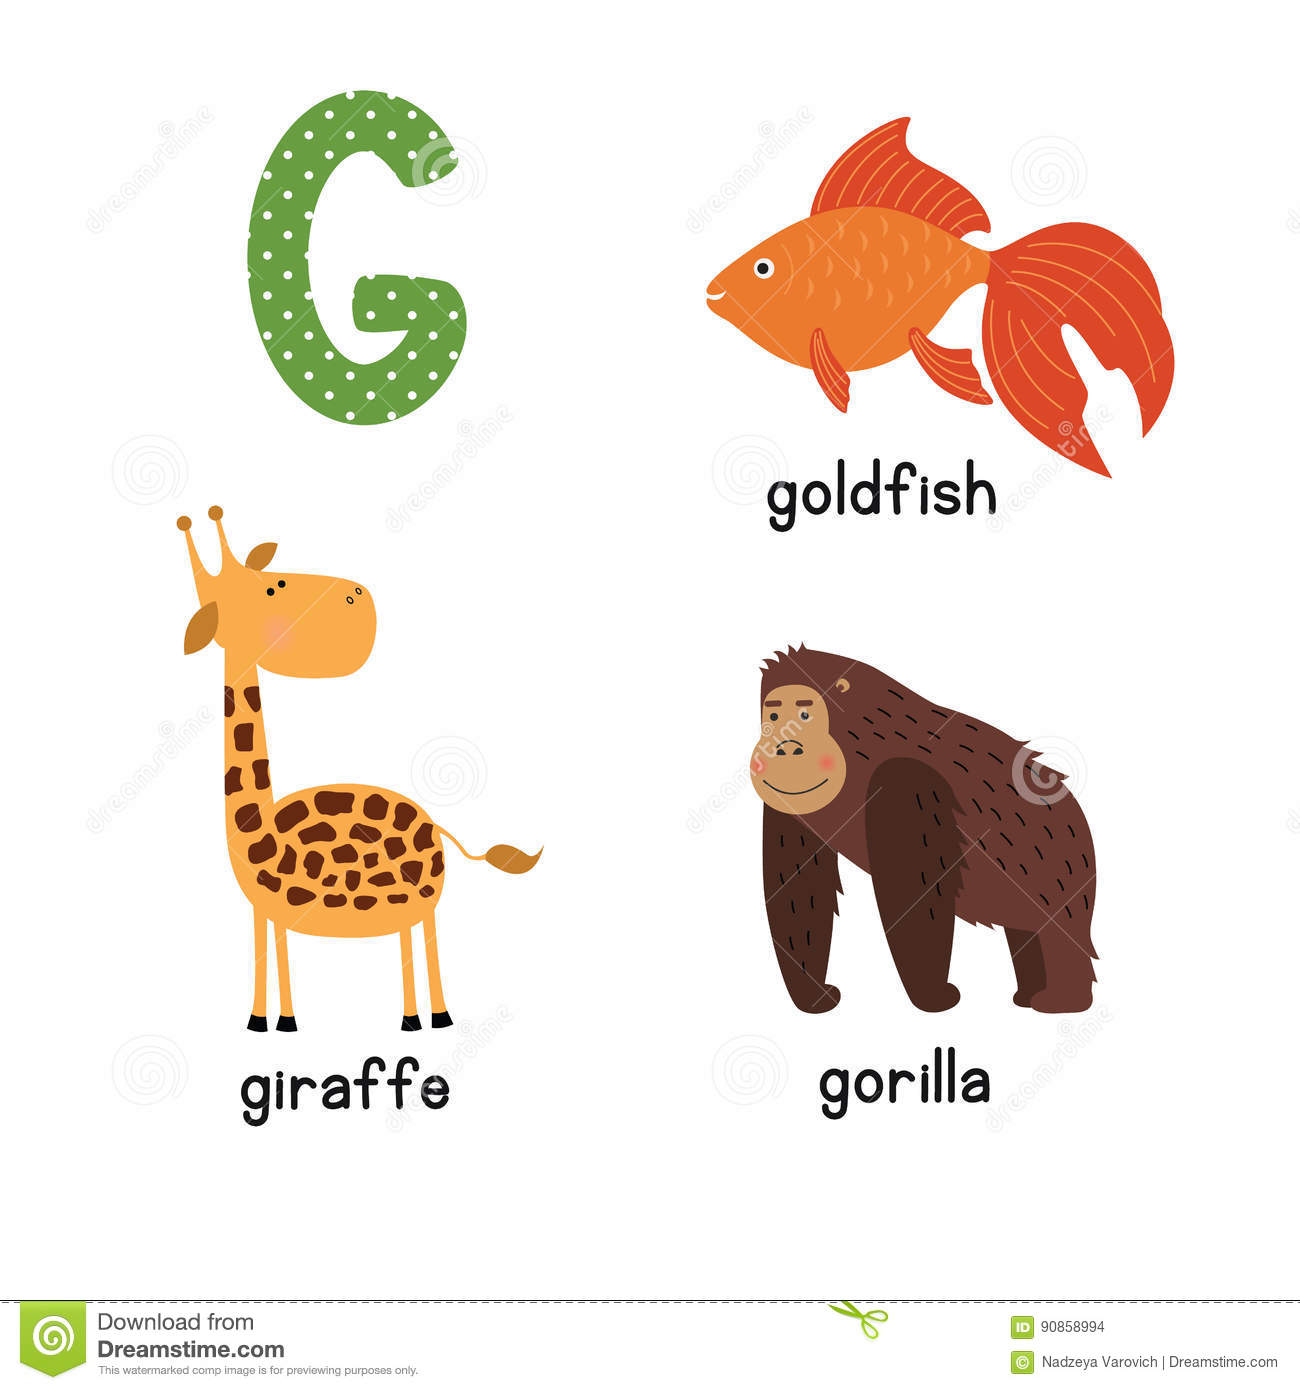 Road Letters Fb further Es Rb A together with Alphabet Health E besides Small Cursive Letters Advan additionally Old Metal Letters. on alphabet letter animals